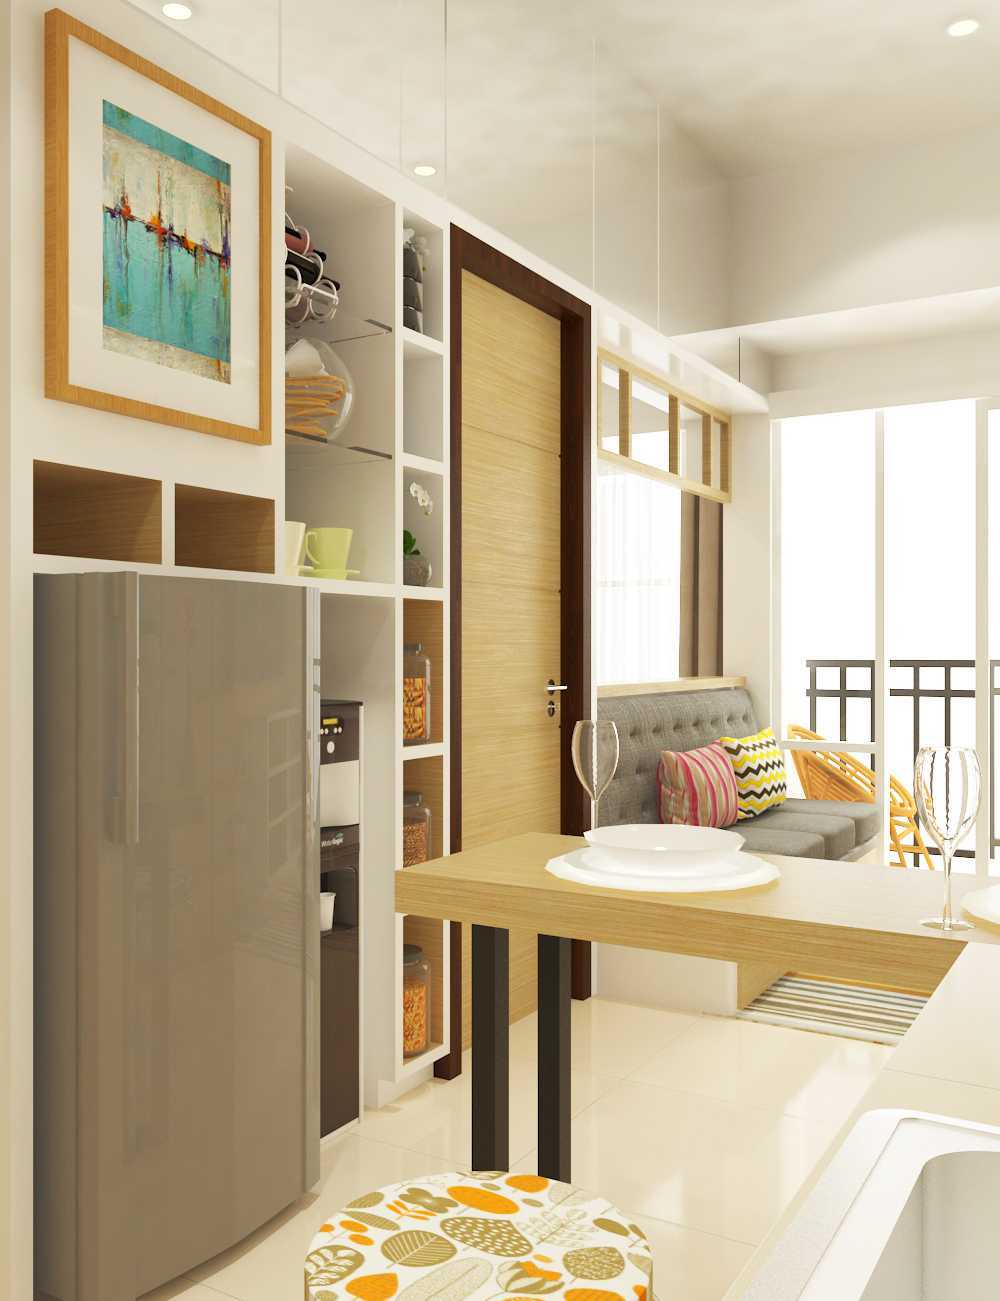 Miv Architects (Ar. Muhammad Ikhsan Hamiru, Iai & Partners) Interior Design Of Apartment Unit Makassar, South Sulawesi, Indonesia Makassar, South Sulawesi, Indonesia Apartment Room Design Skandinavia 29136